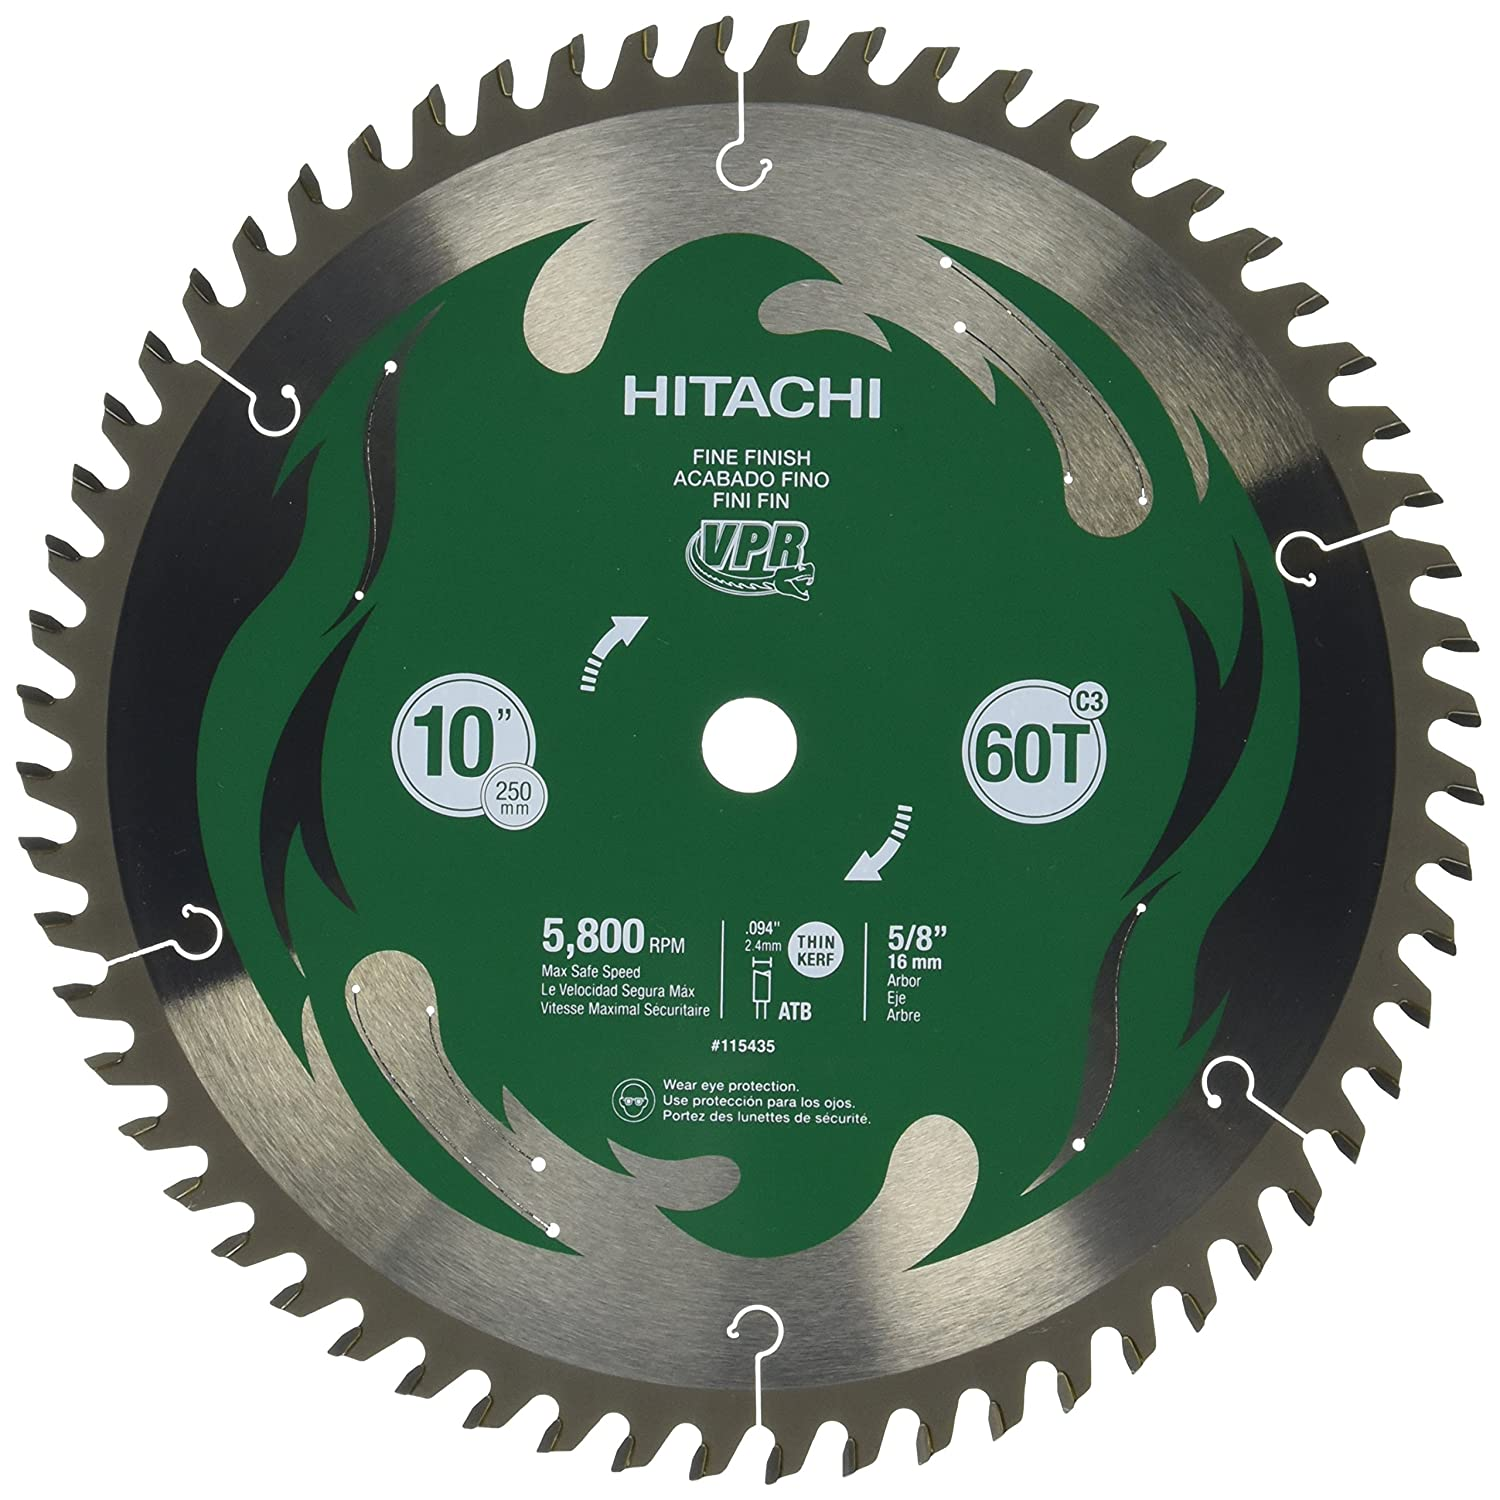 Hitachi Miter Saw Blade